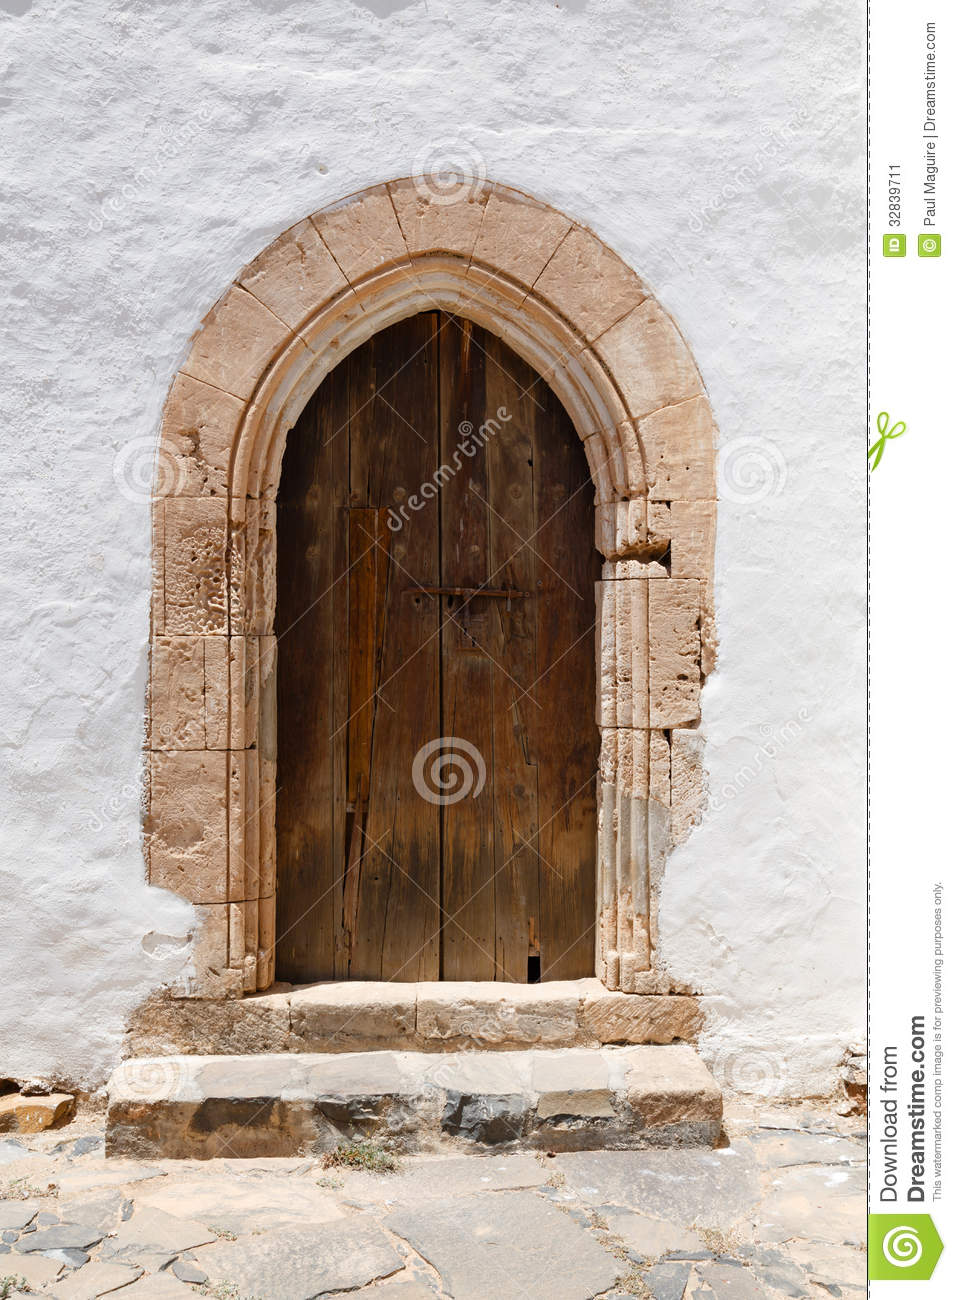 Arched door stock image image 32839711 for Door of stone